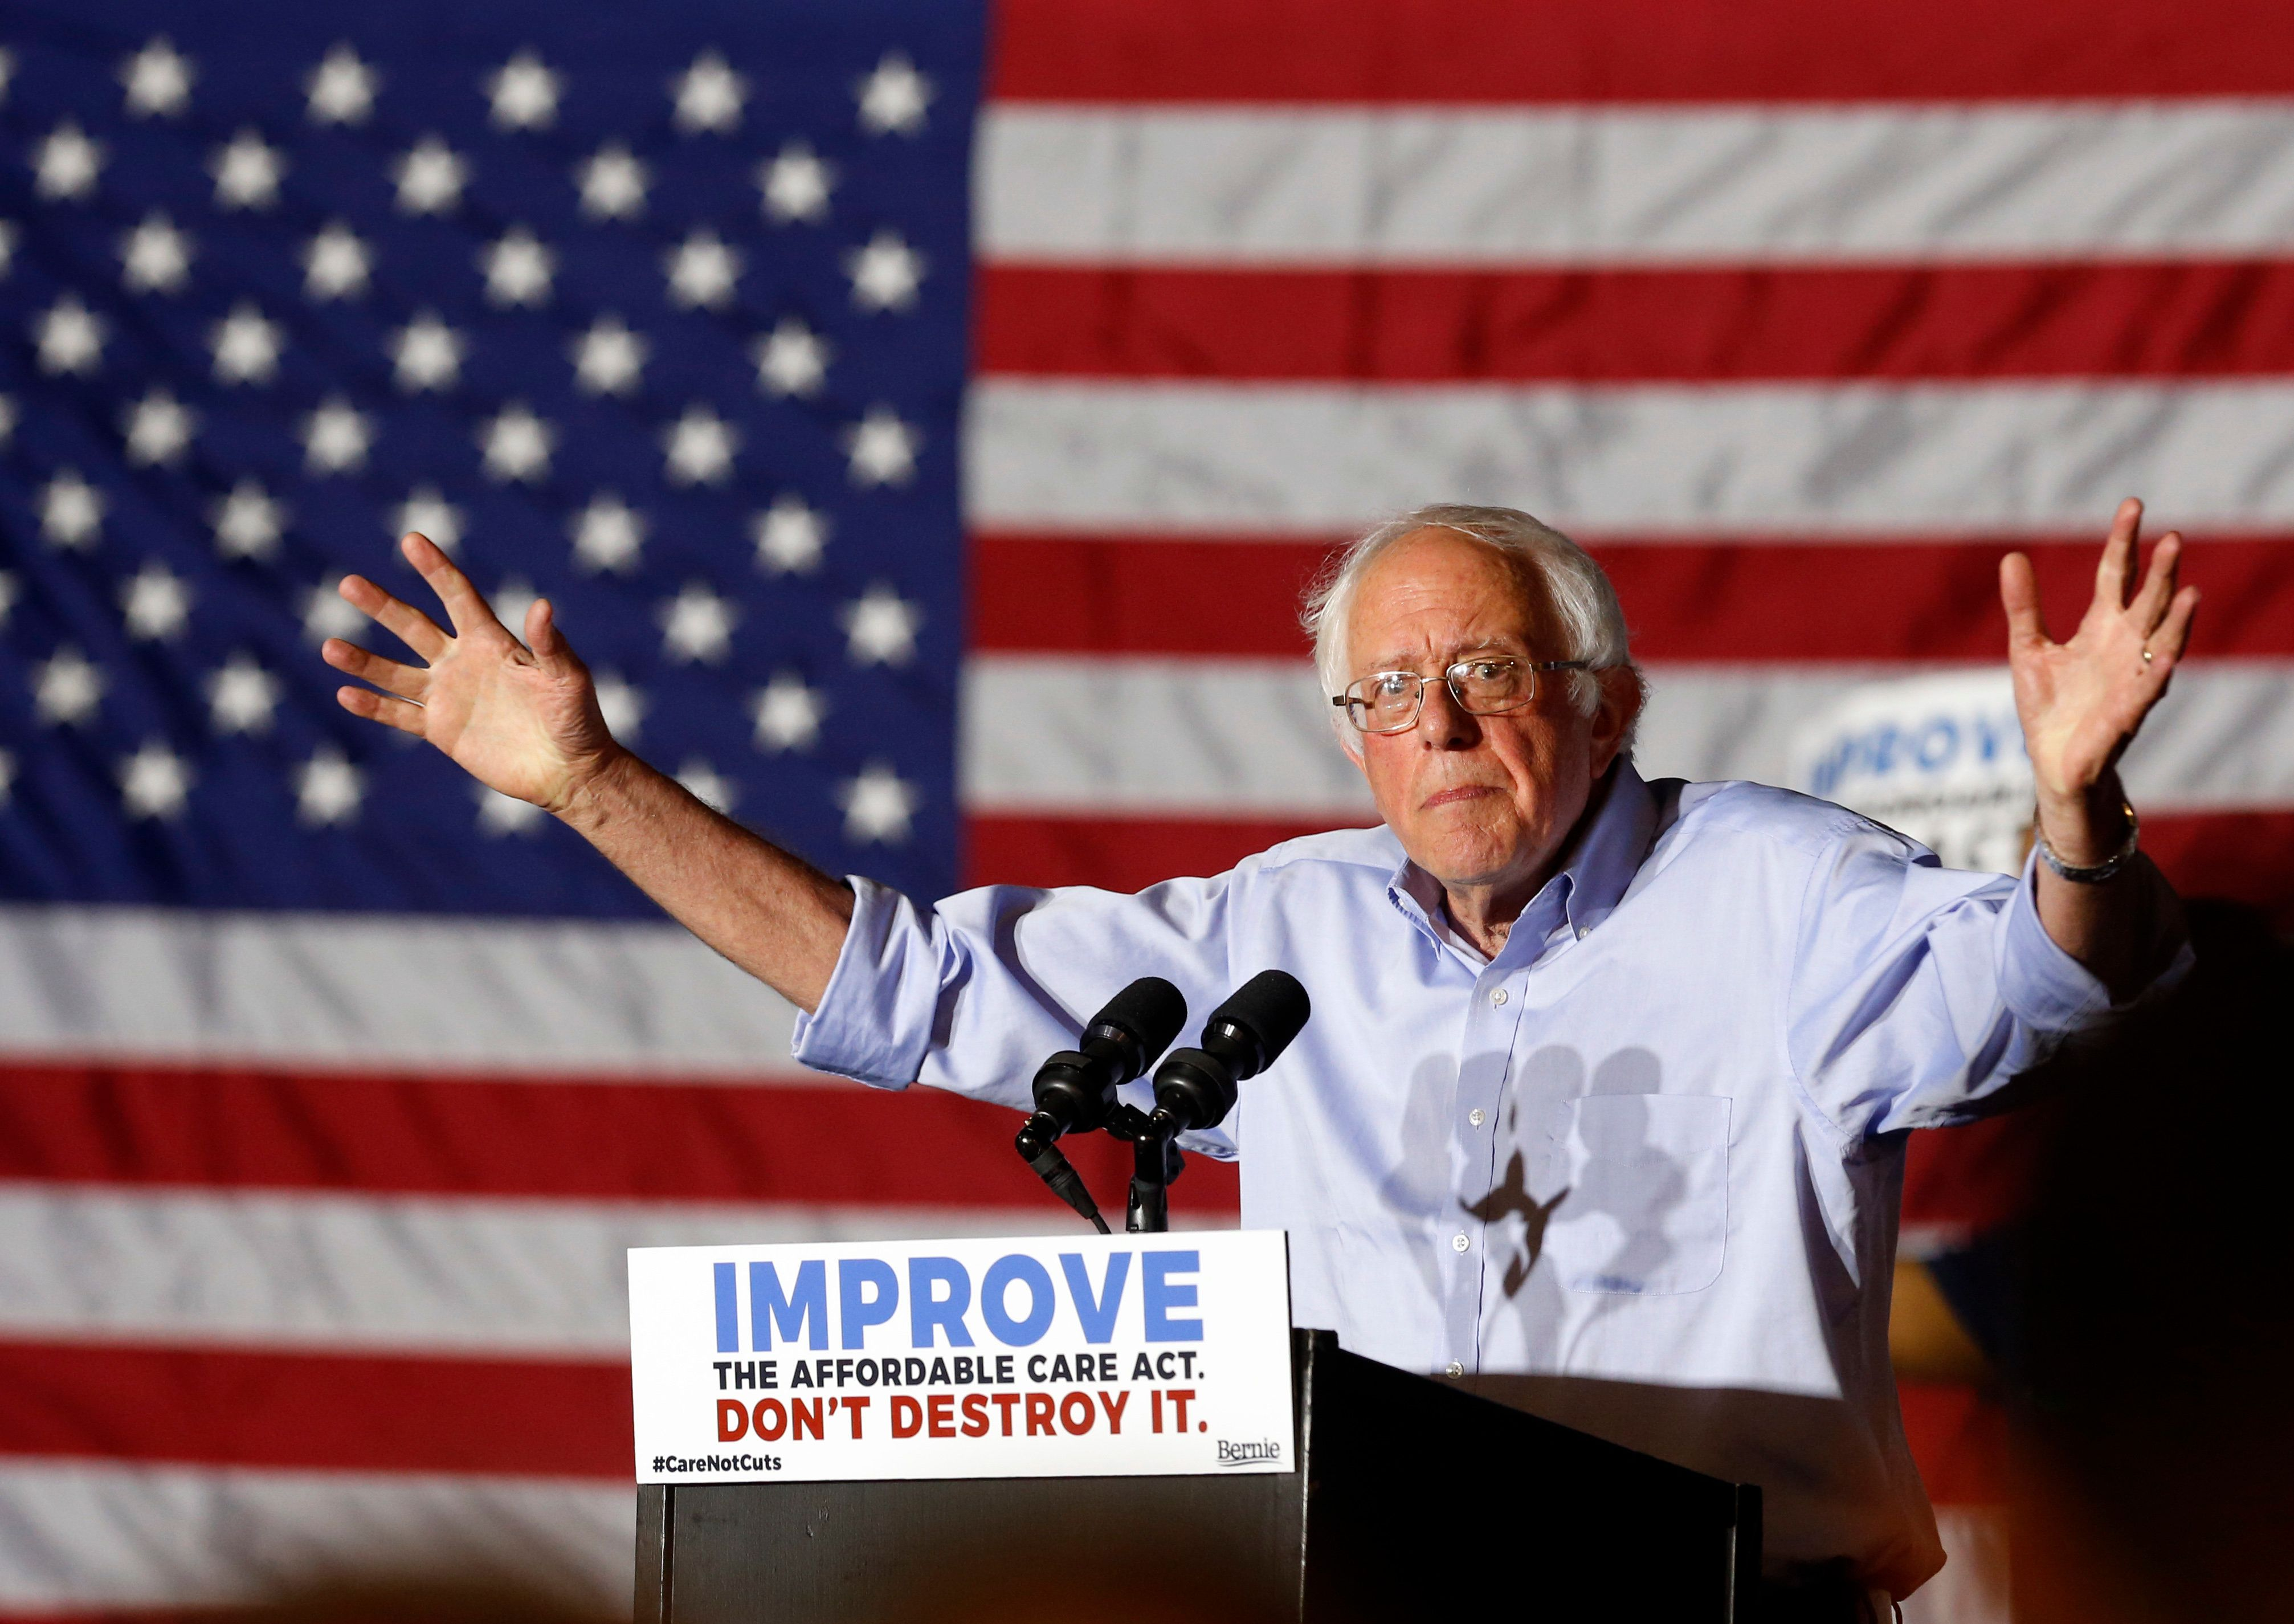 US Senator Bernie Sanders (I-VT) addresses a rally in support of the Affordable Care Act in Covington, Kentucky on July 9, 2017. / AFP PHOTO / Jay LaPrete        (Photo credit should read JAY LAPRETE/AFP/Getty Images)